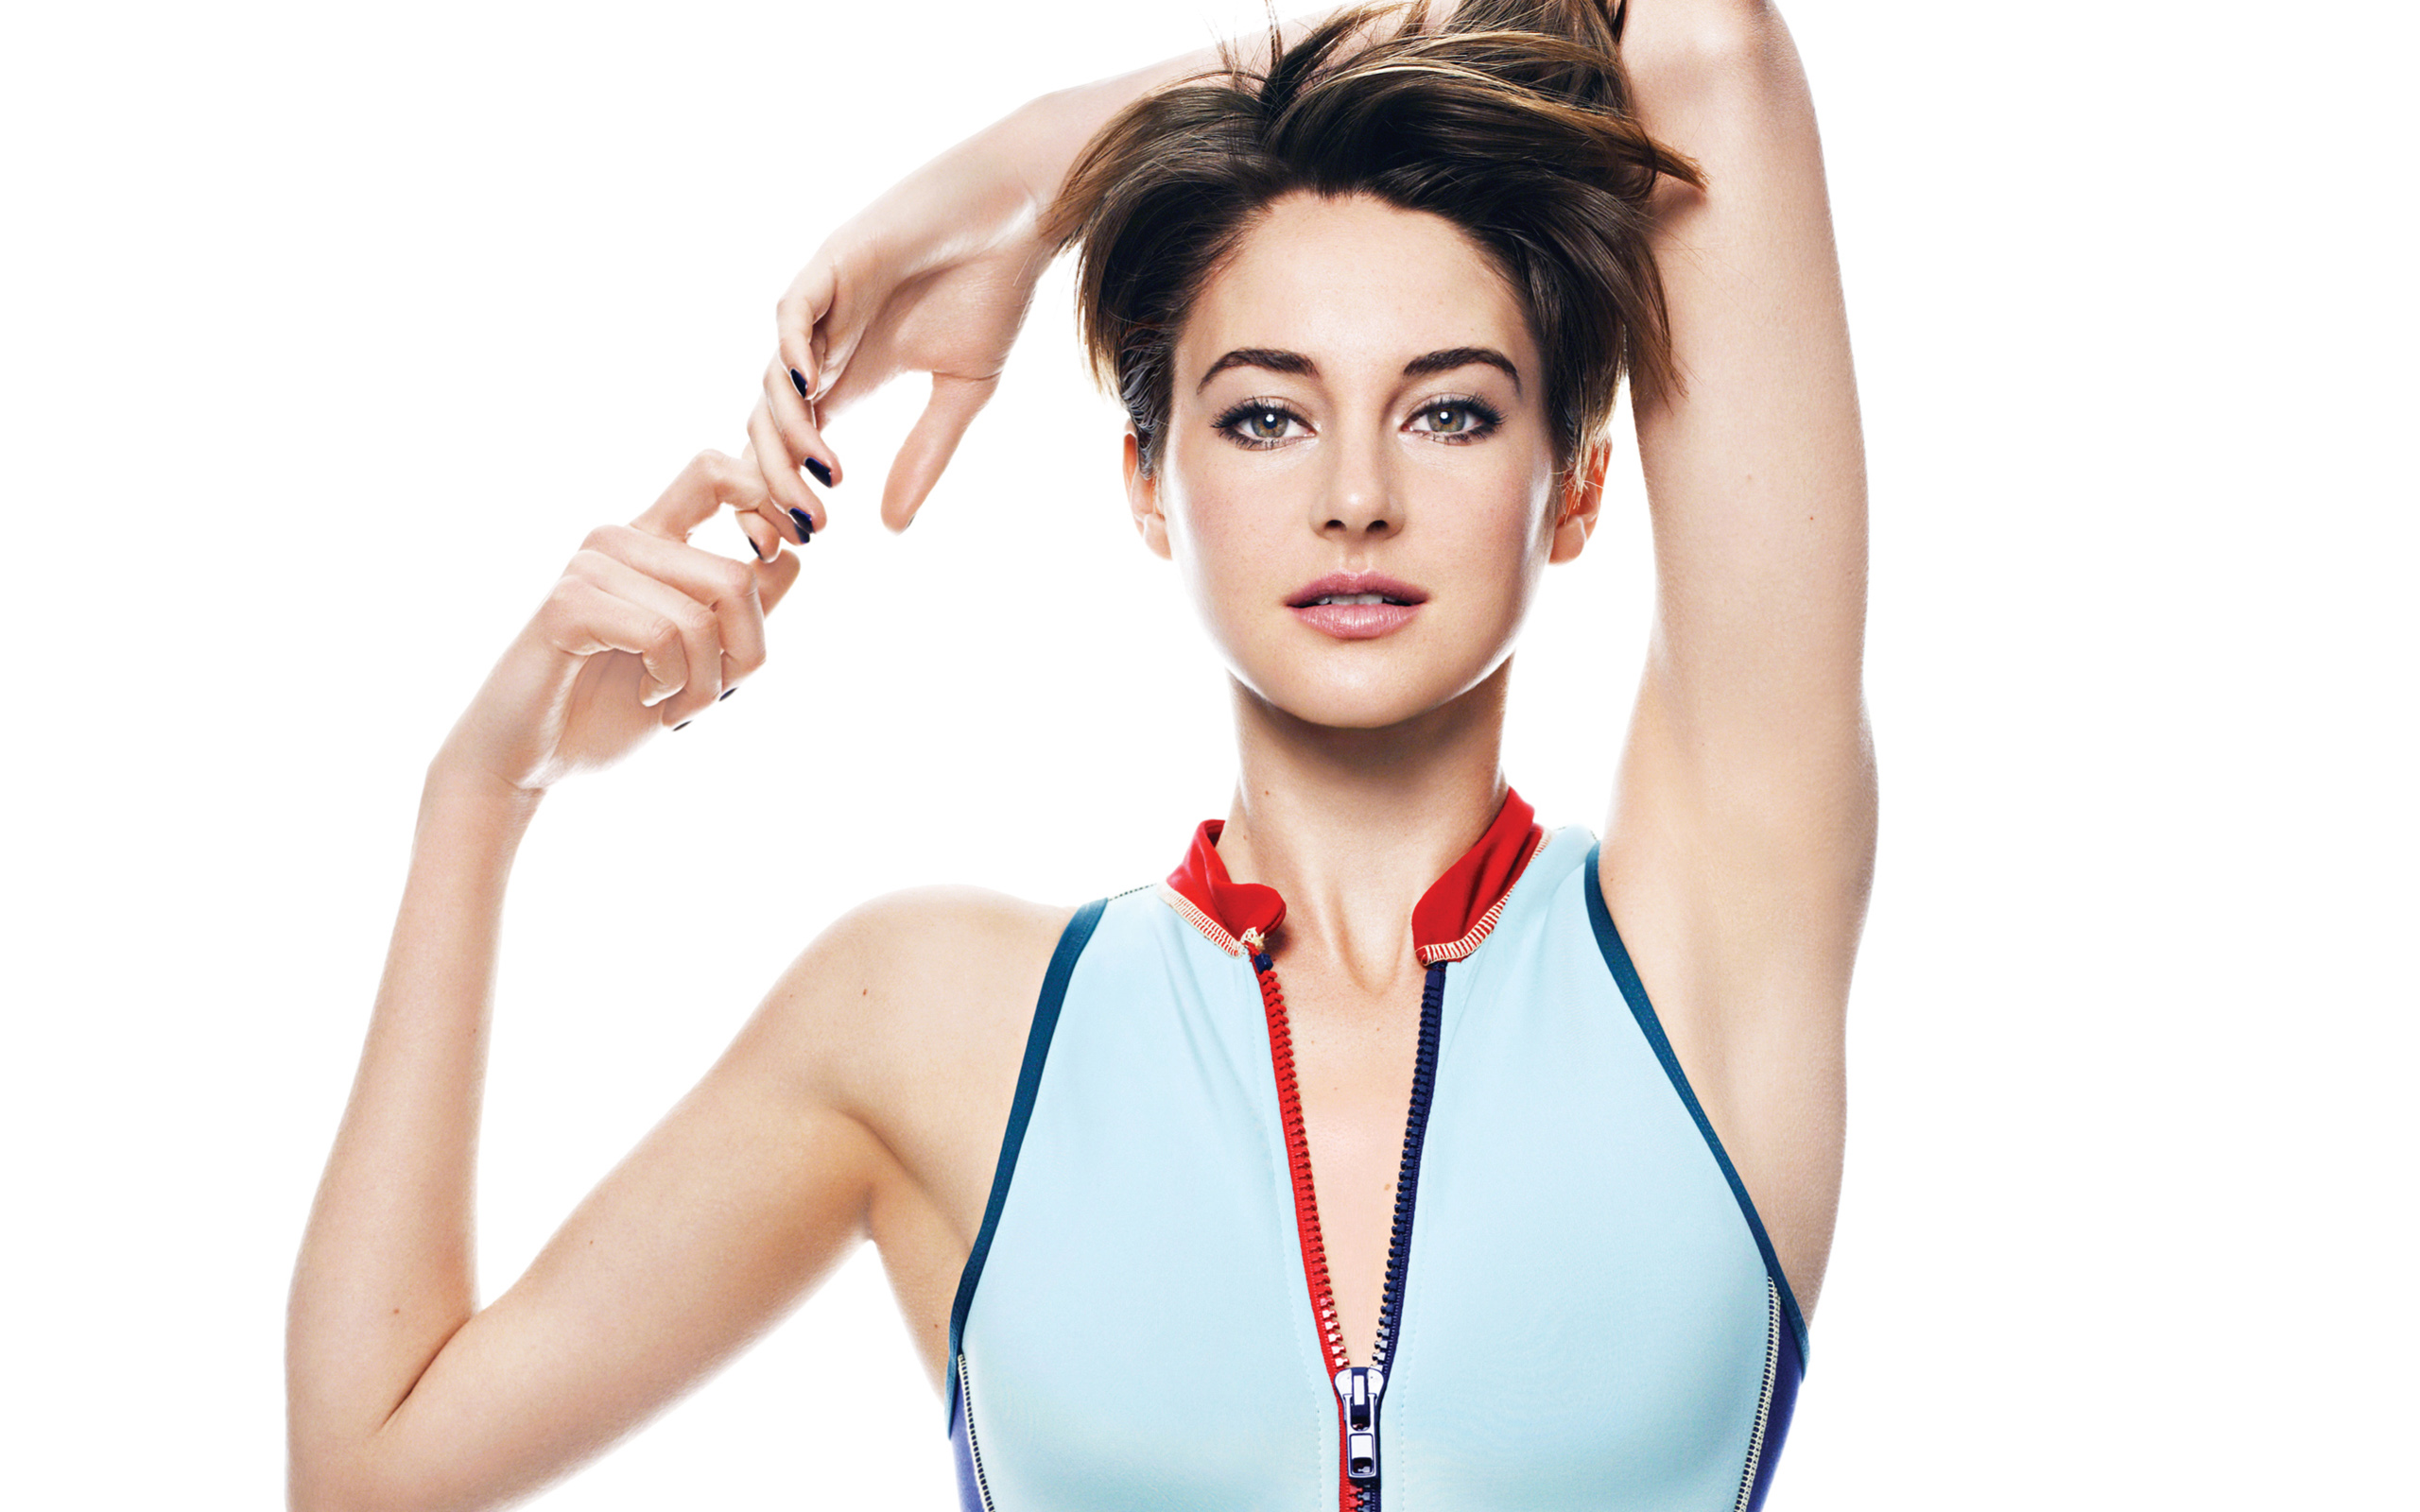 Actress Shailene Woodley 1164.33 Kb